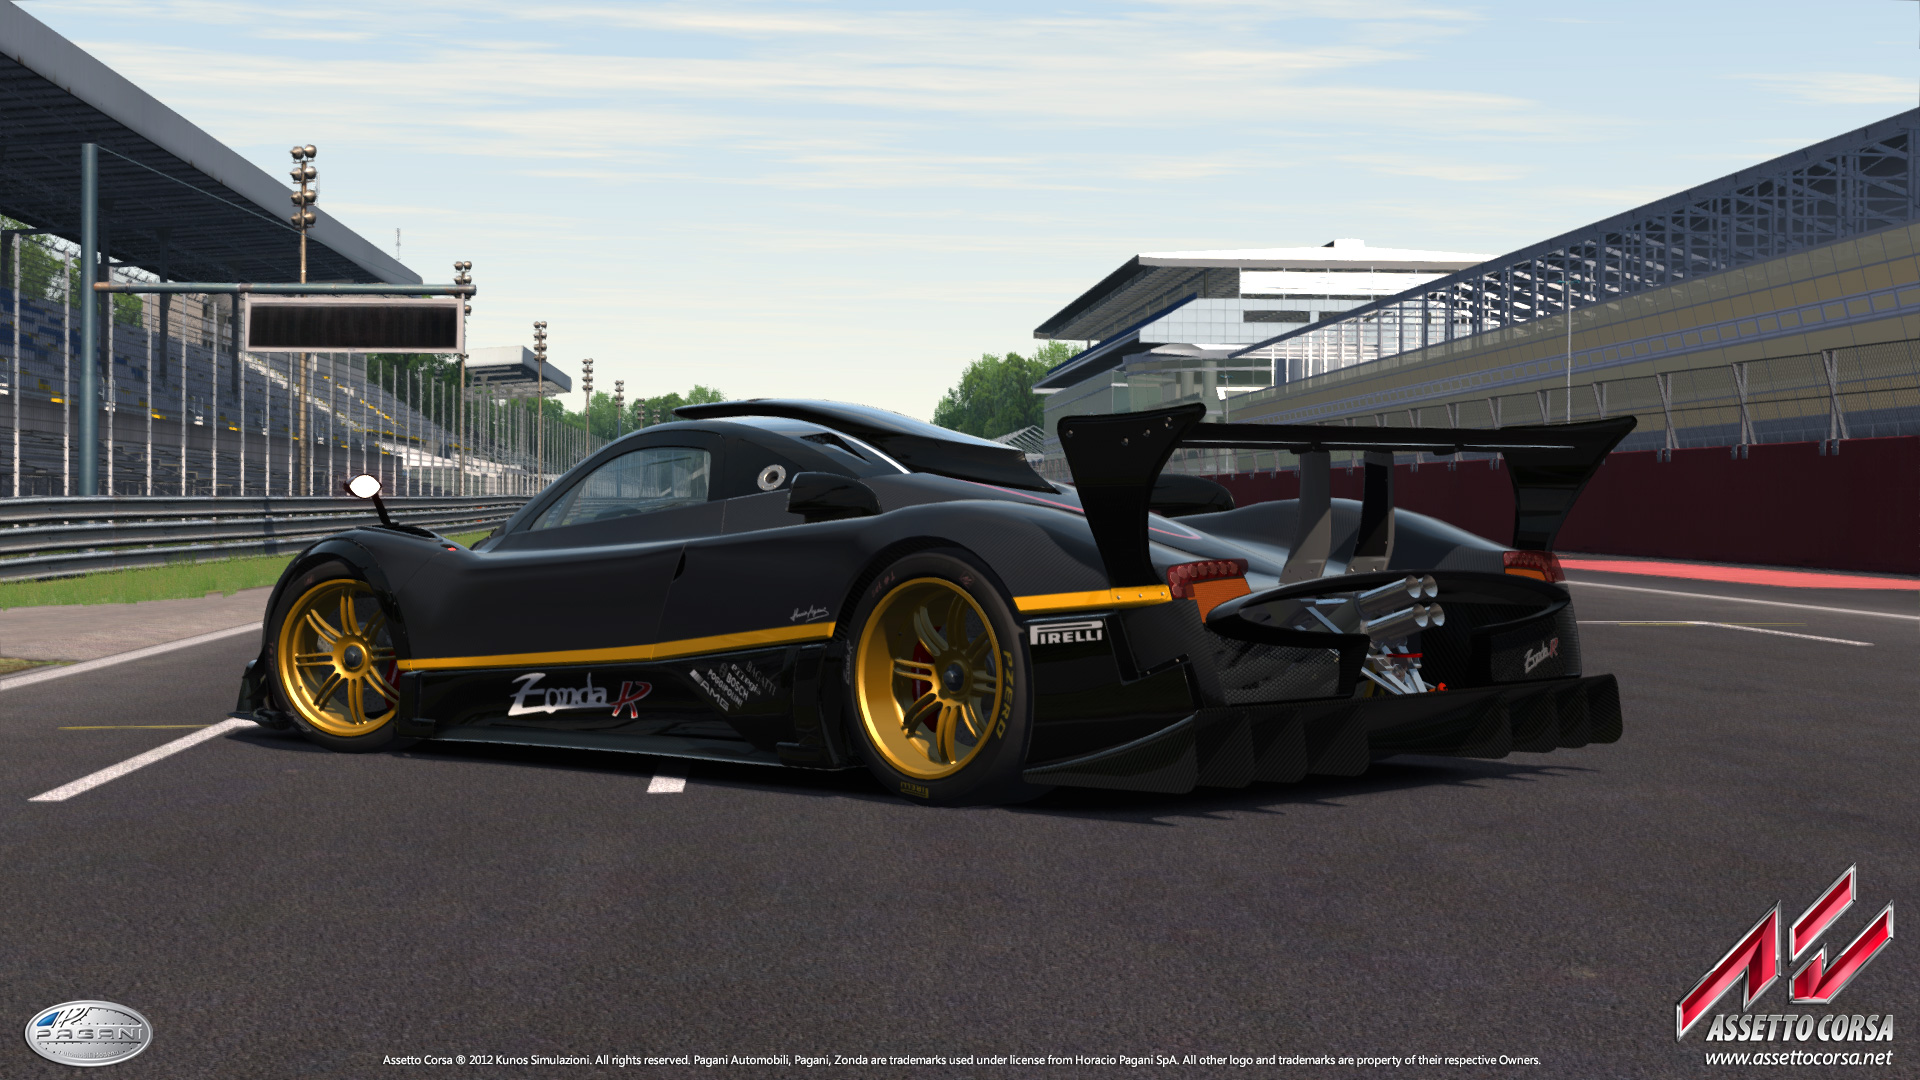 Download This Wallpaper Wallpaper From: racesimcentral com Report 1737